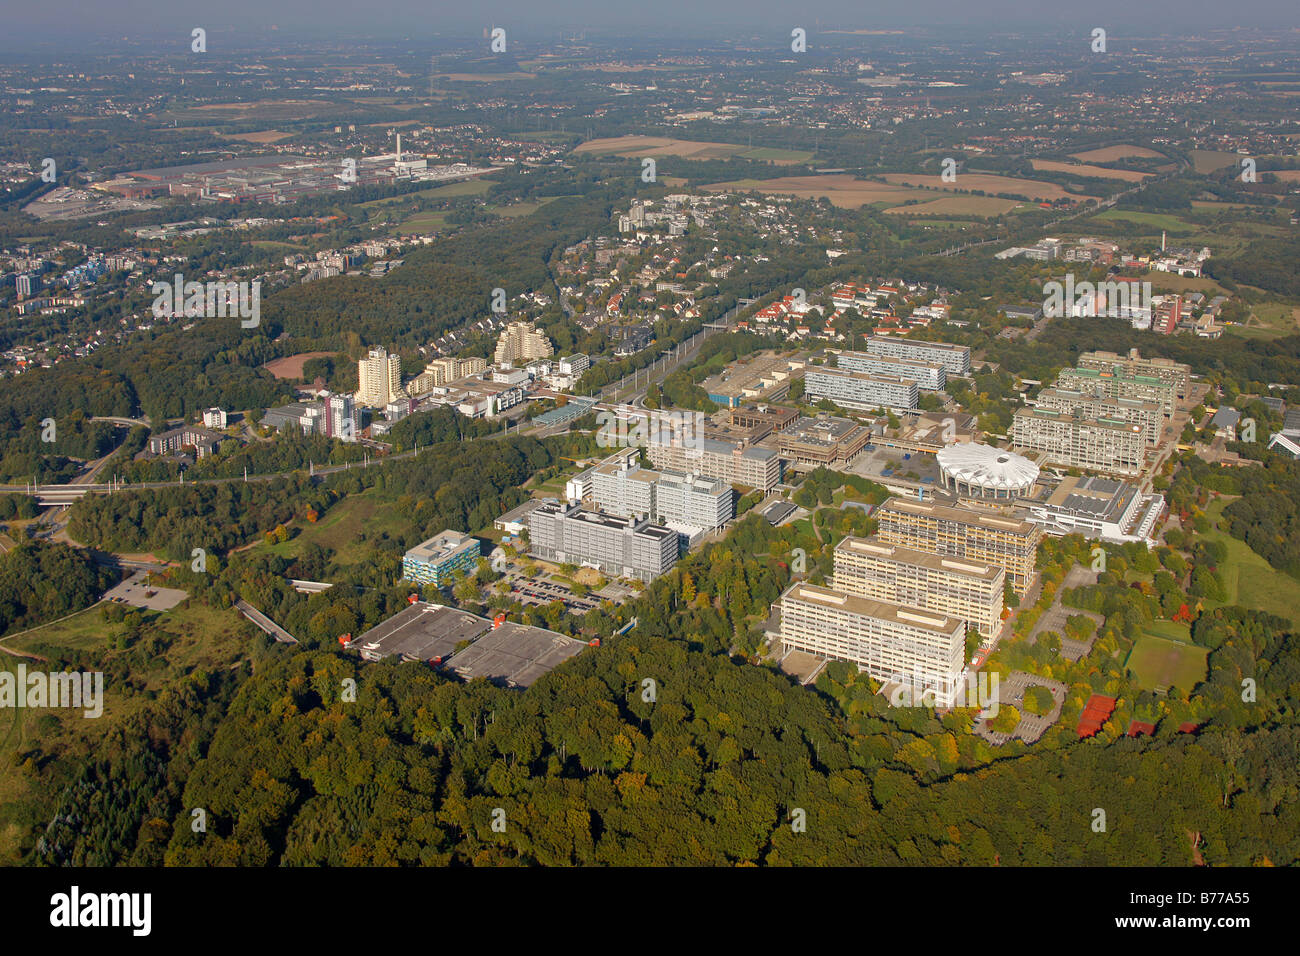 Aerial photograph, Centre for Biomedicine at the RUB, Ruhr University, Bochum, Ruhr district, North Rhine-Westphalia, - Stock Image